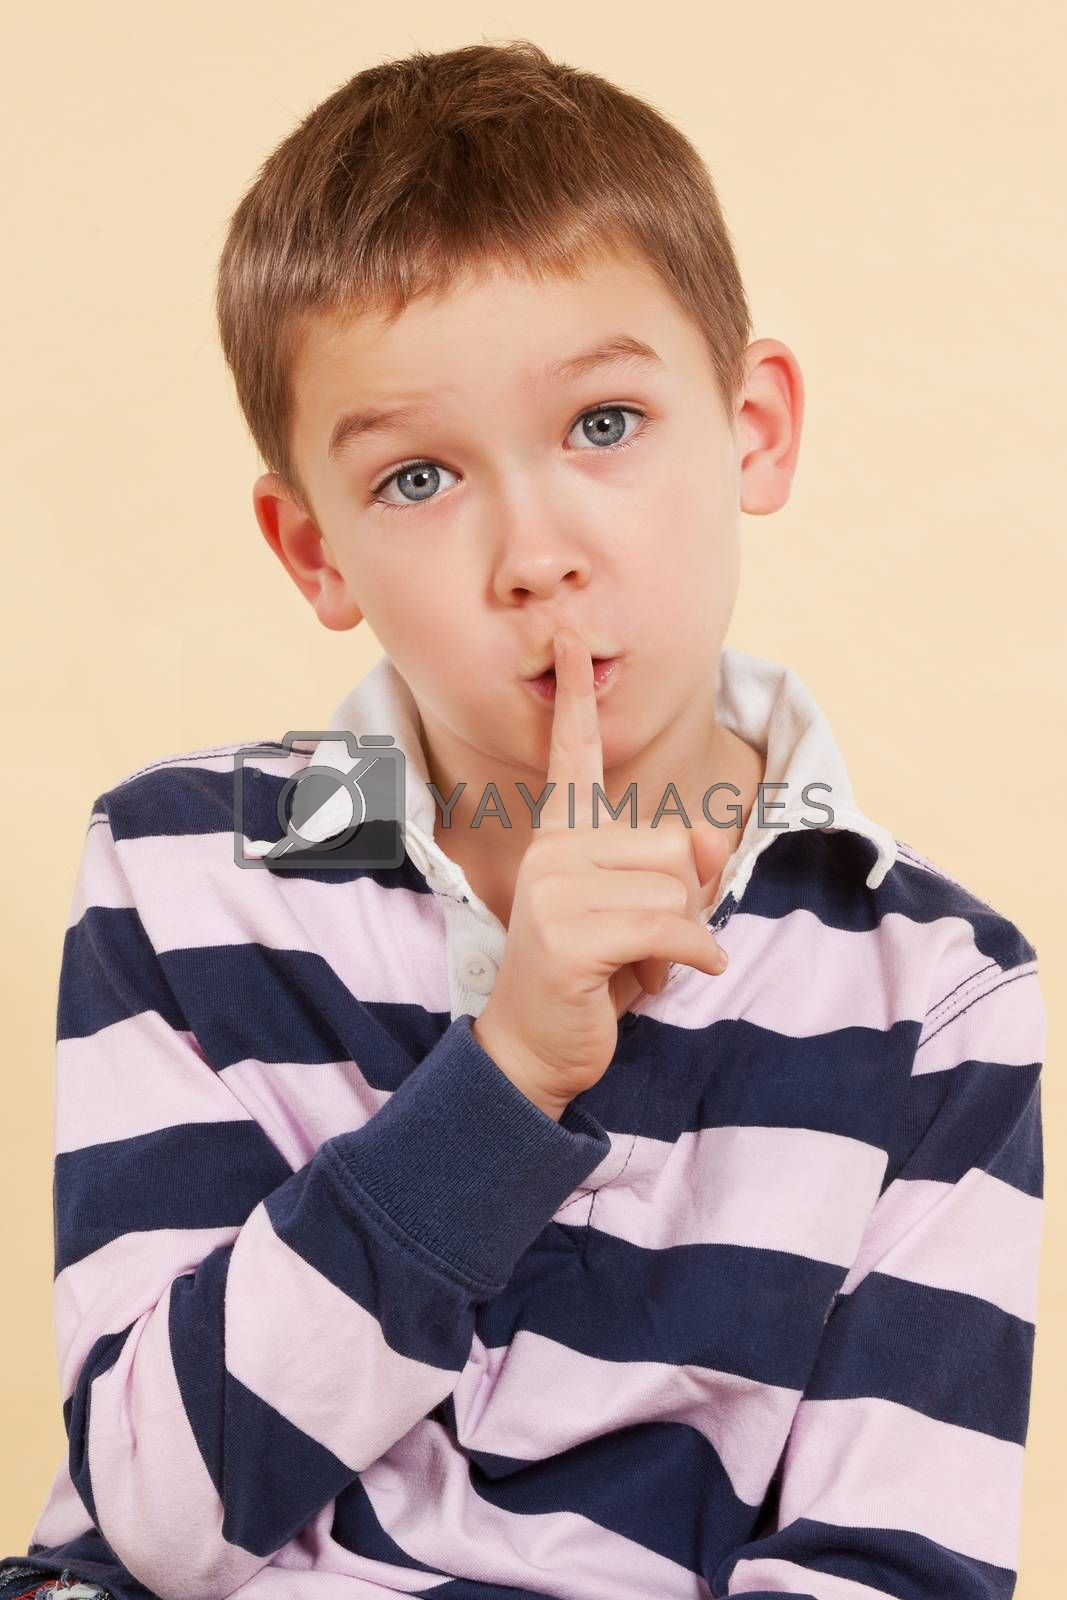 The secret.  Don't tell anyone. Young boy with finger over his mouth isolated on neutral background. Facial expressions concept. Psst